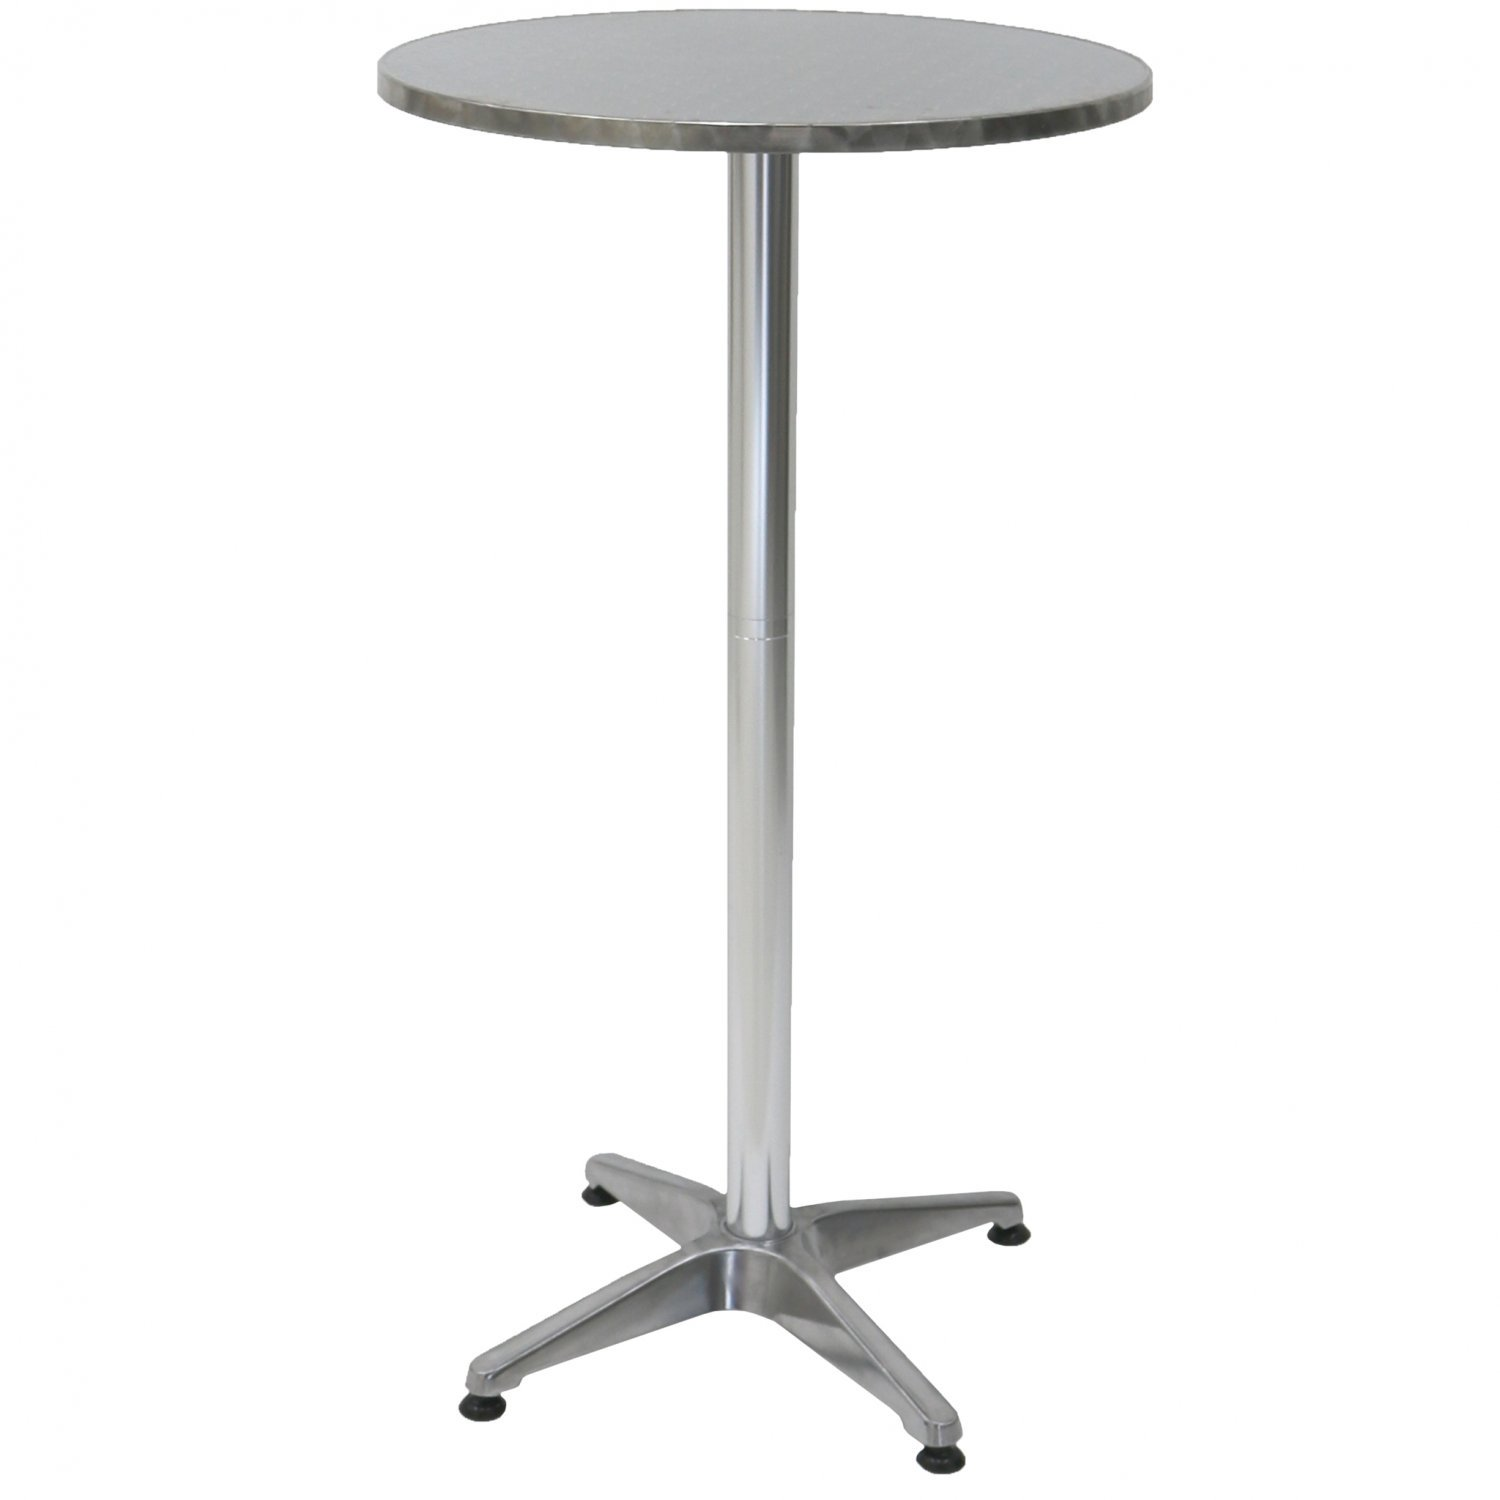 1.1m Aluminium Bistro Table Bar Pub Cafe Party Adjustable Height